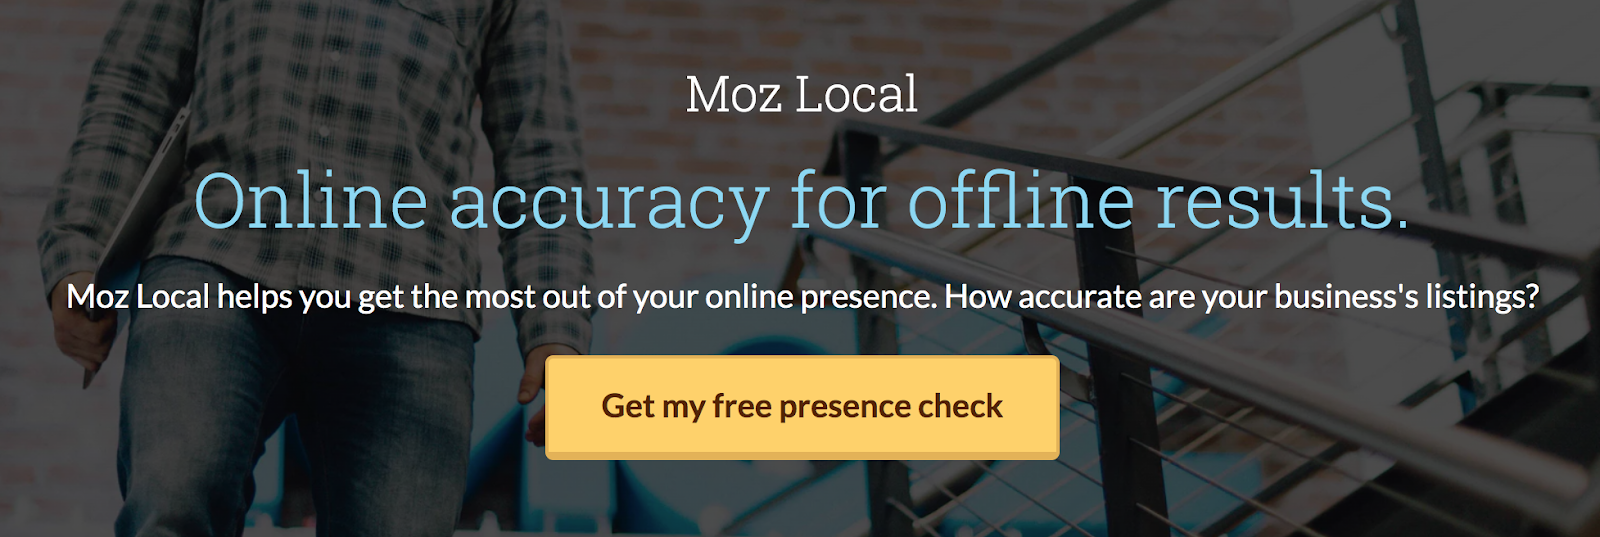 Moz Local Landing Page Snippet